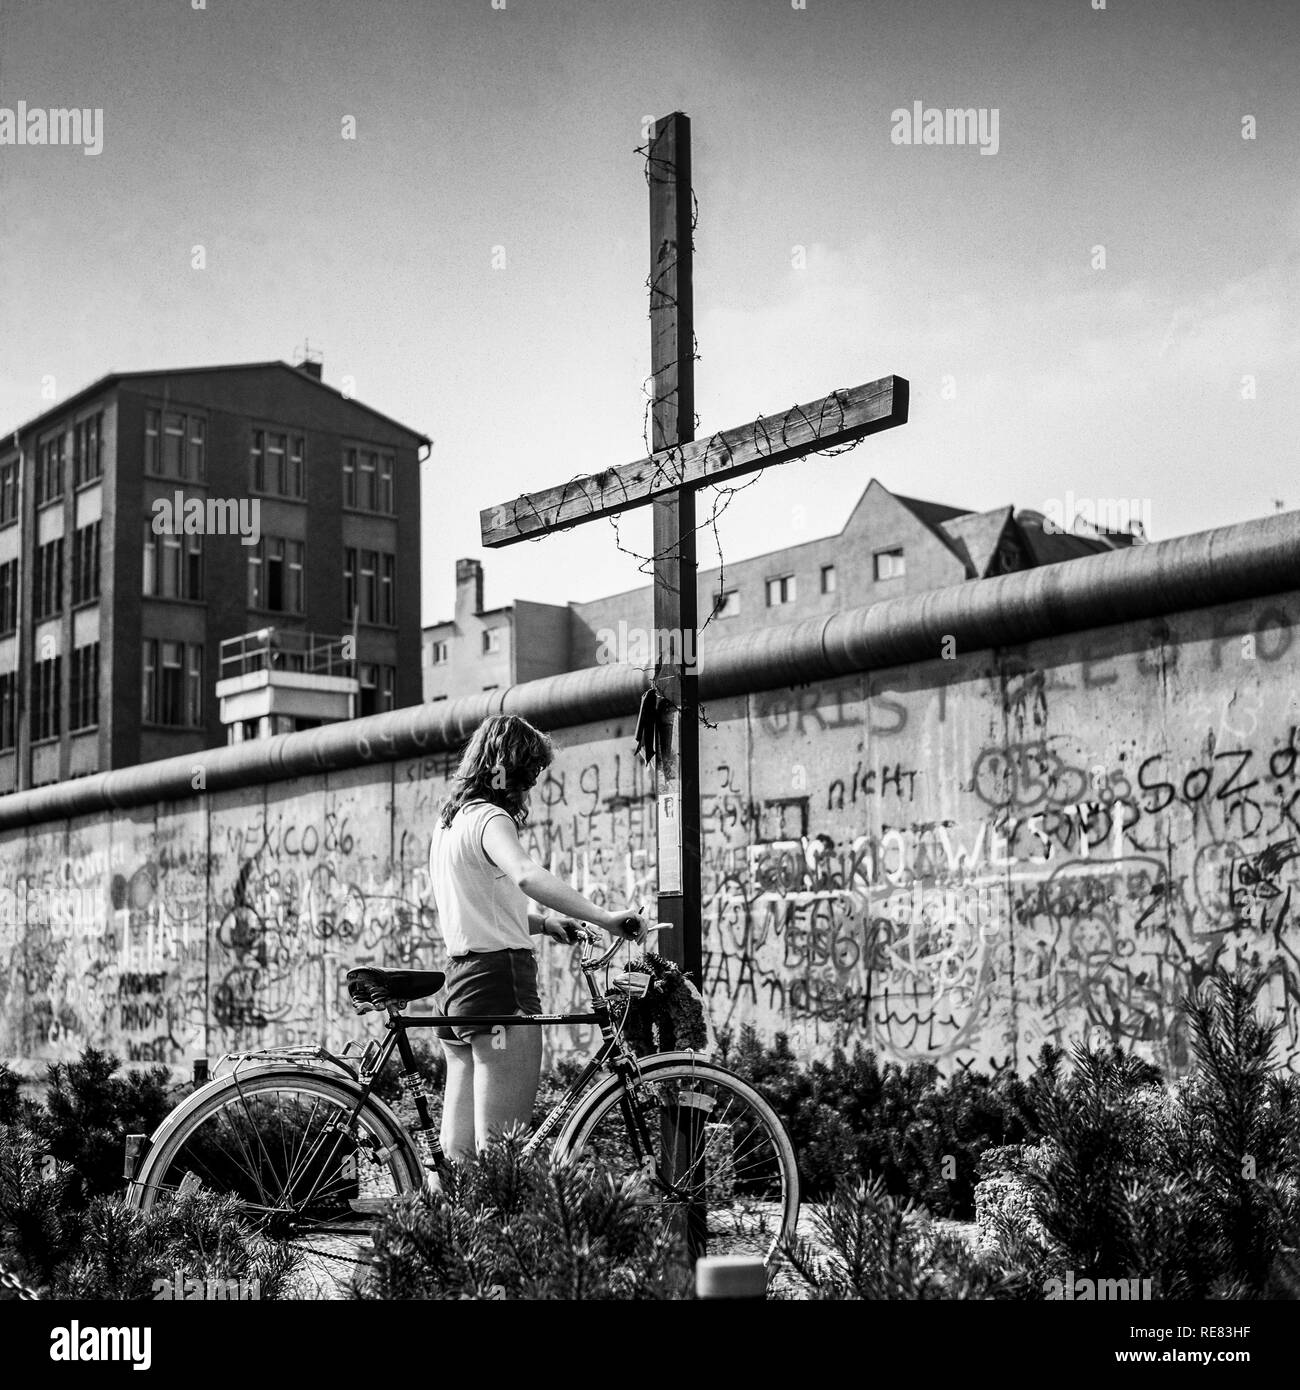 August 1986, young woman with bike, Peter Fechter memorial, graffitis on Berlin Wall, Zimmerstrasse street, Kreuzberg, West Berlin, Germany, Europe, Stock Photo